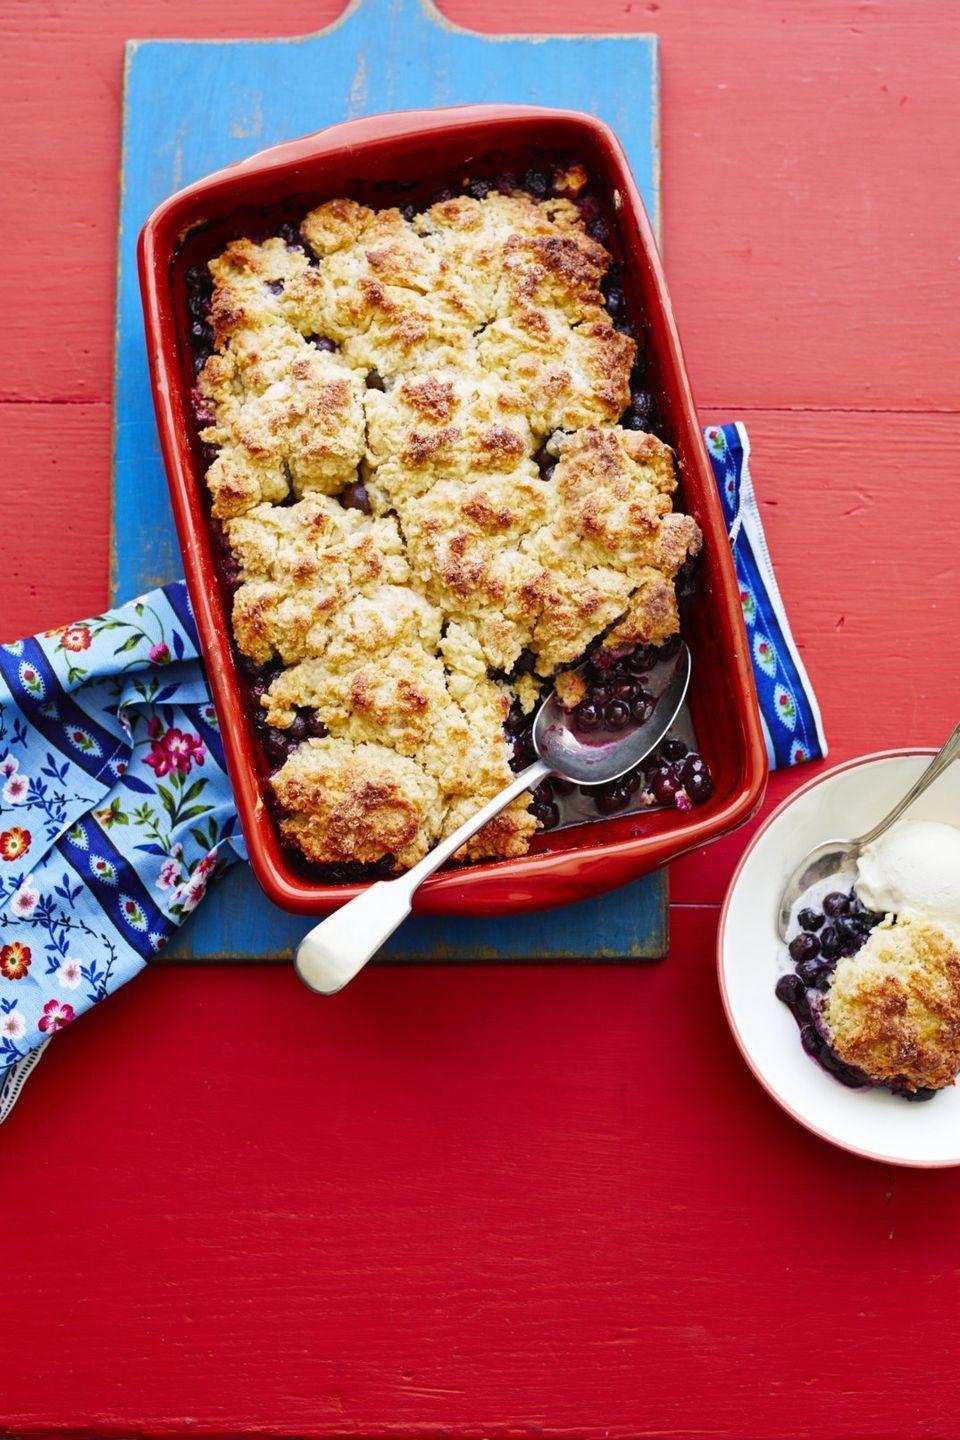 """<p>This crumbly blueberry cobbler is a crowd-pleaser. Don't forget the whipped cream!</p><p><strong><a href=""""https://thepioneerwoman.com/food-cooking/recipes/a32098873/blueberry-cobbler-recipe/"""" rel=""""nofollow noopener"""" target=""""_blank"""" data-ylk=""""slk:Get the recipe."""" class=""""link rapid-noclick-resp"""">Get the recipe.</a></strong></p><p><a class=""""link rapid-noclick-resp"""" href=""""https://go.redirectingat.com?id=74968X1596630&url=https%3A%2F%2Fwww.walmart.com%2Fip%2FThe-Pioneer-Woman-Spring-Bouquet-2-Piece-Baker-Set%2F595449072&sref=https%3A%2F%2Fwww.thepioneerwoman.com%2Ffood-cooking%2Fmeals-menus%2Fg32109085%2Ffourth-of-july-desserts%2F"""" rel=""""nofollow noopener"""" target=""""_blank"""" data-ylk=""""slk:SHOP BAKING DISHES"""">SHOP BAKING DISHES</a></p>"""